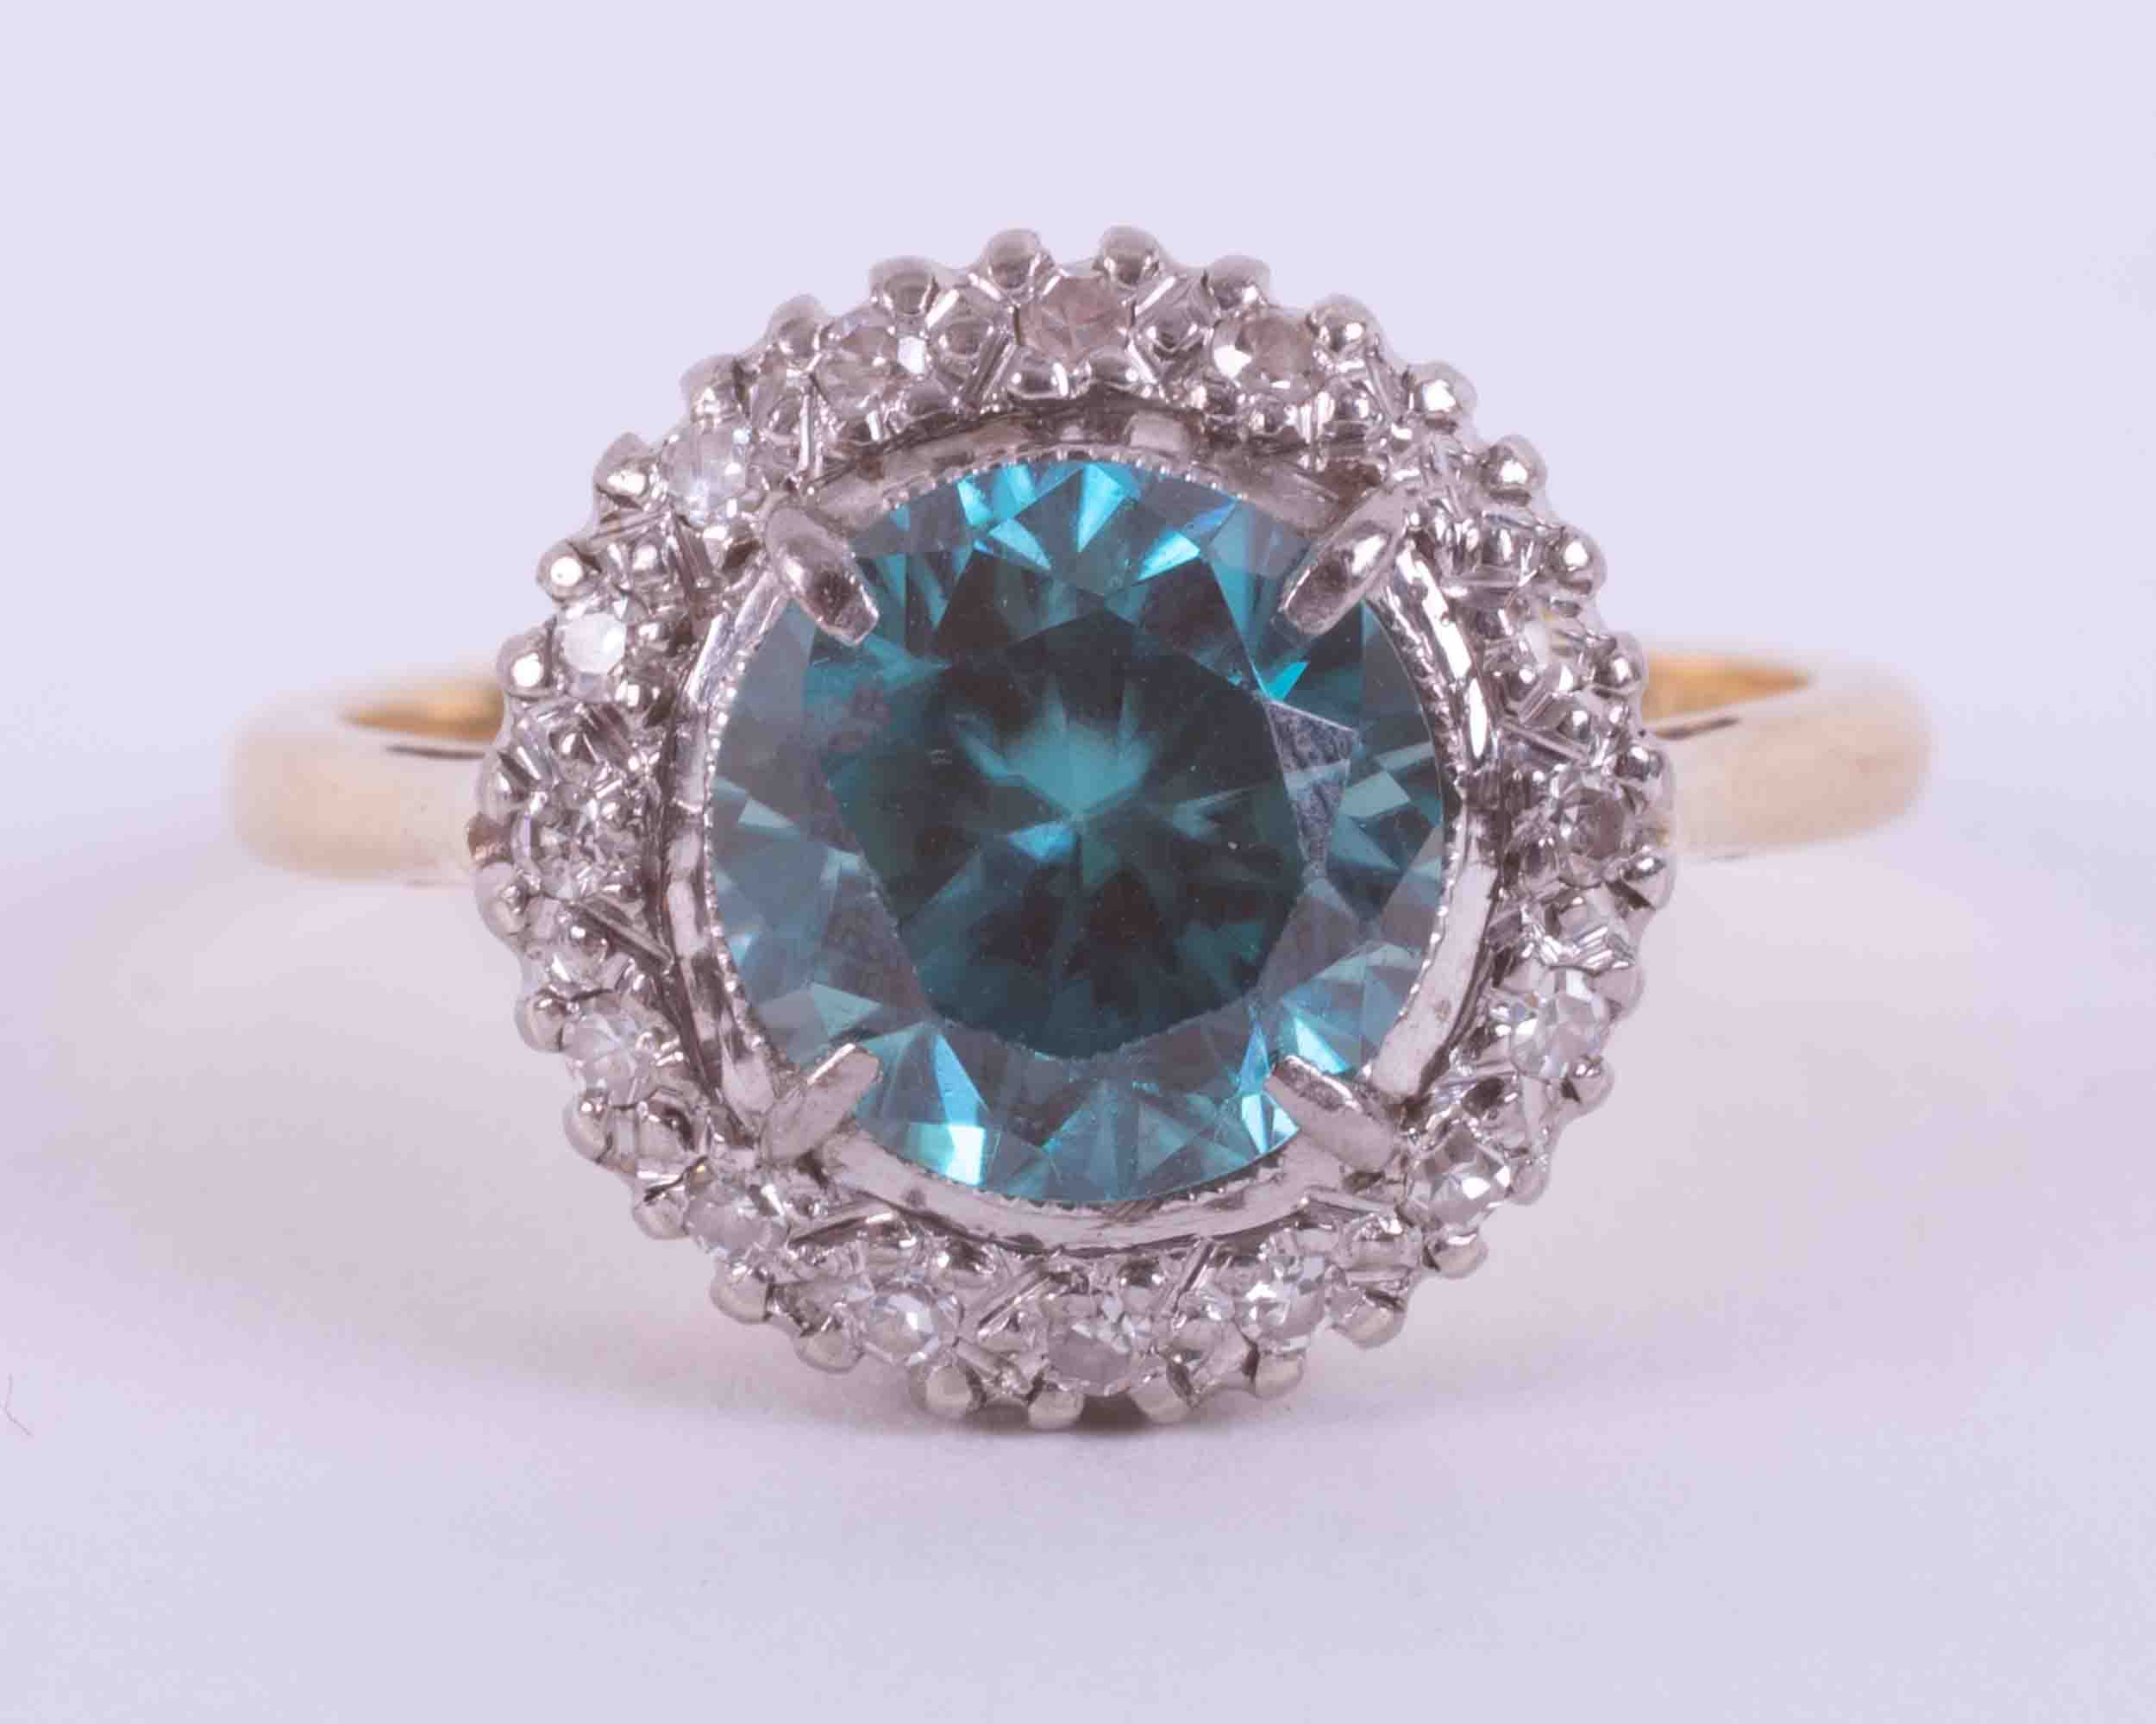 An 18ct yellow gold & platinum cluster ring set with approx. 1.67 carats of blue zircon surrounded